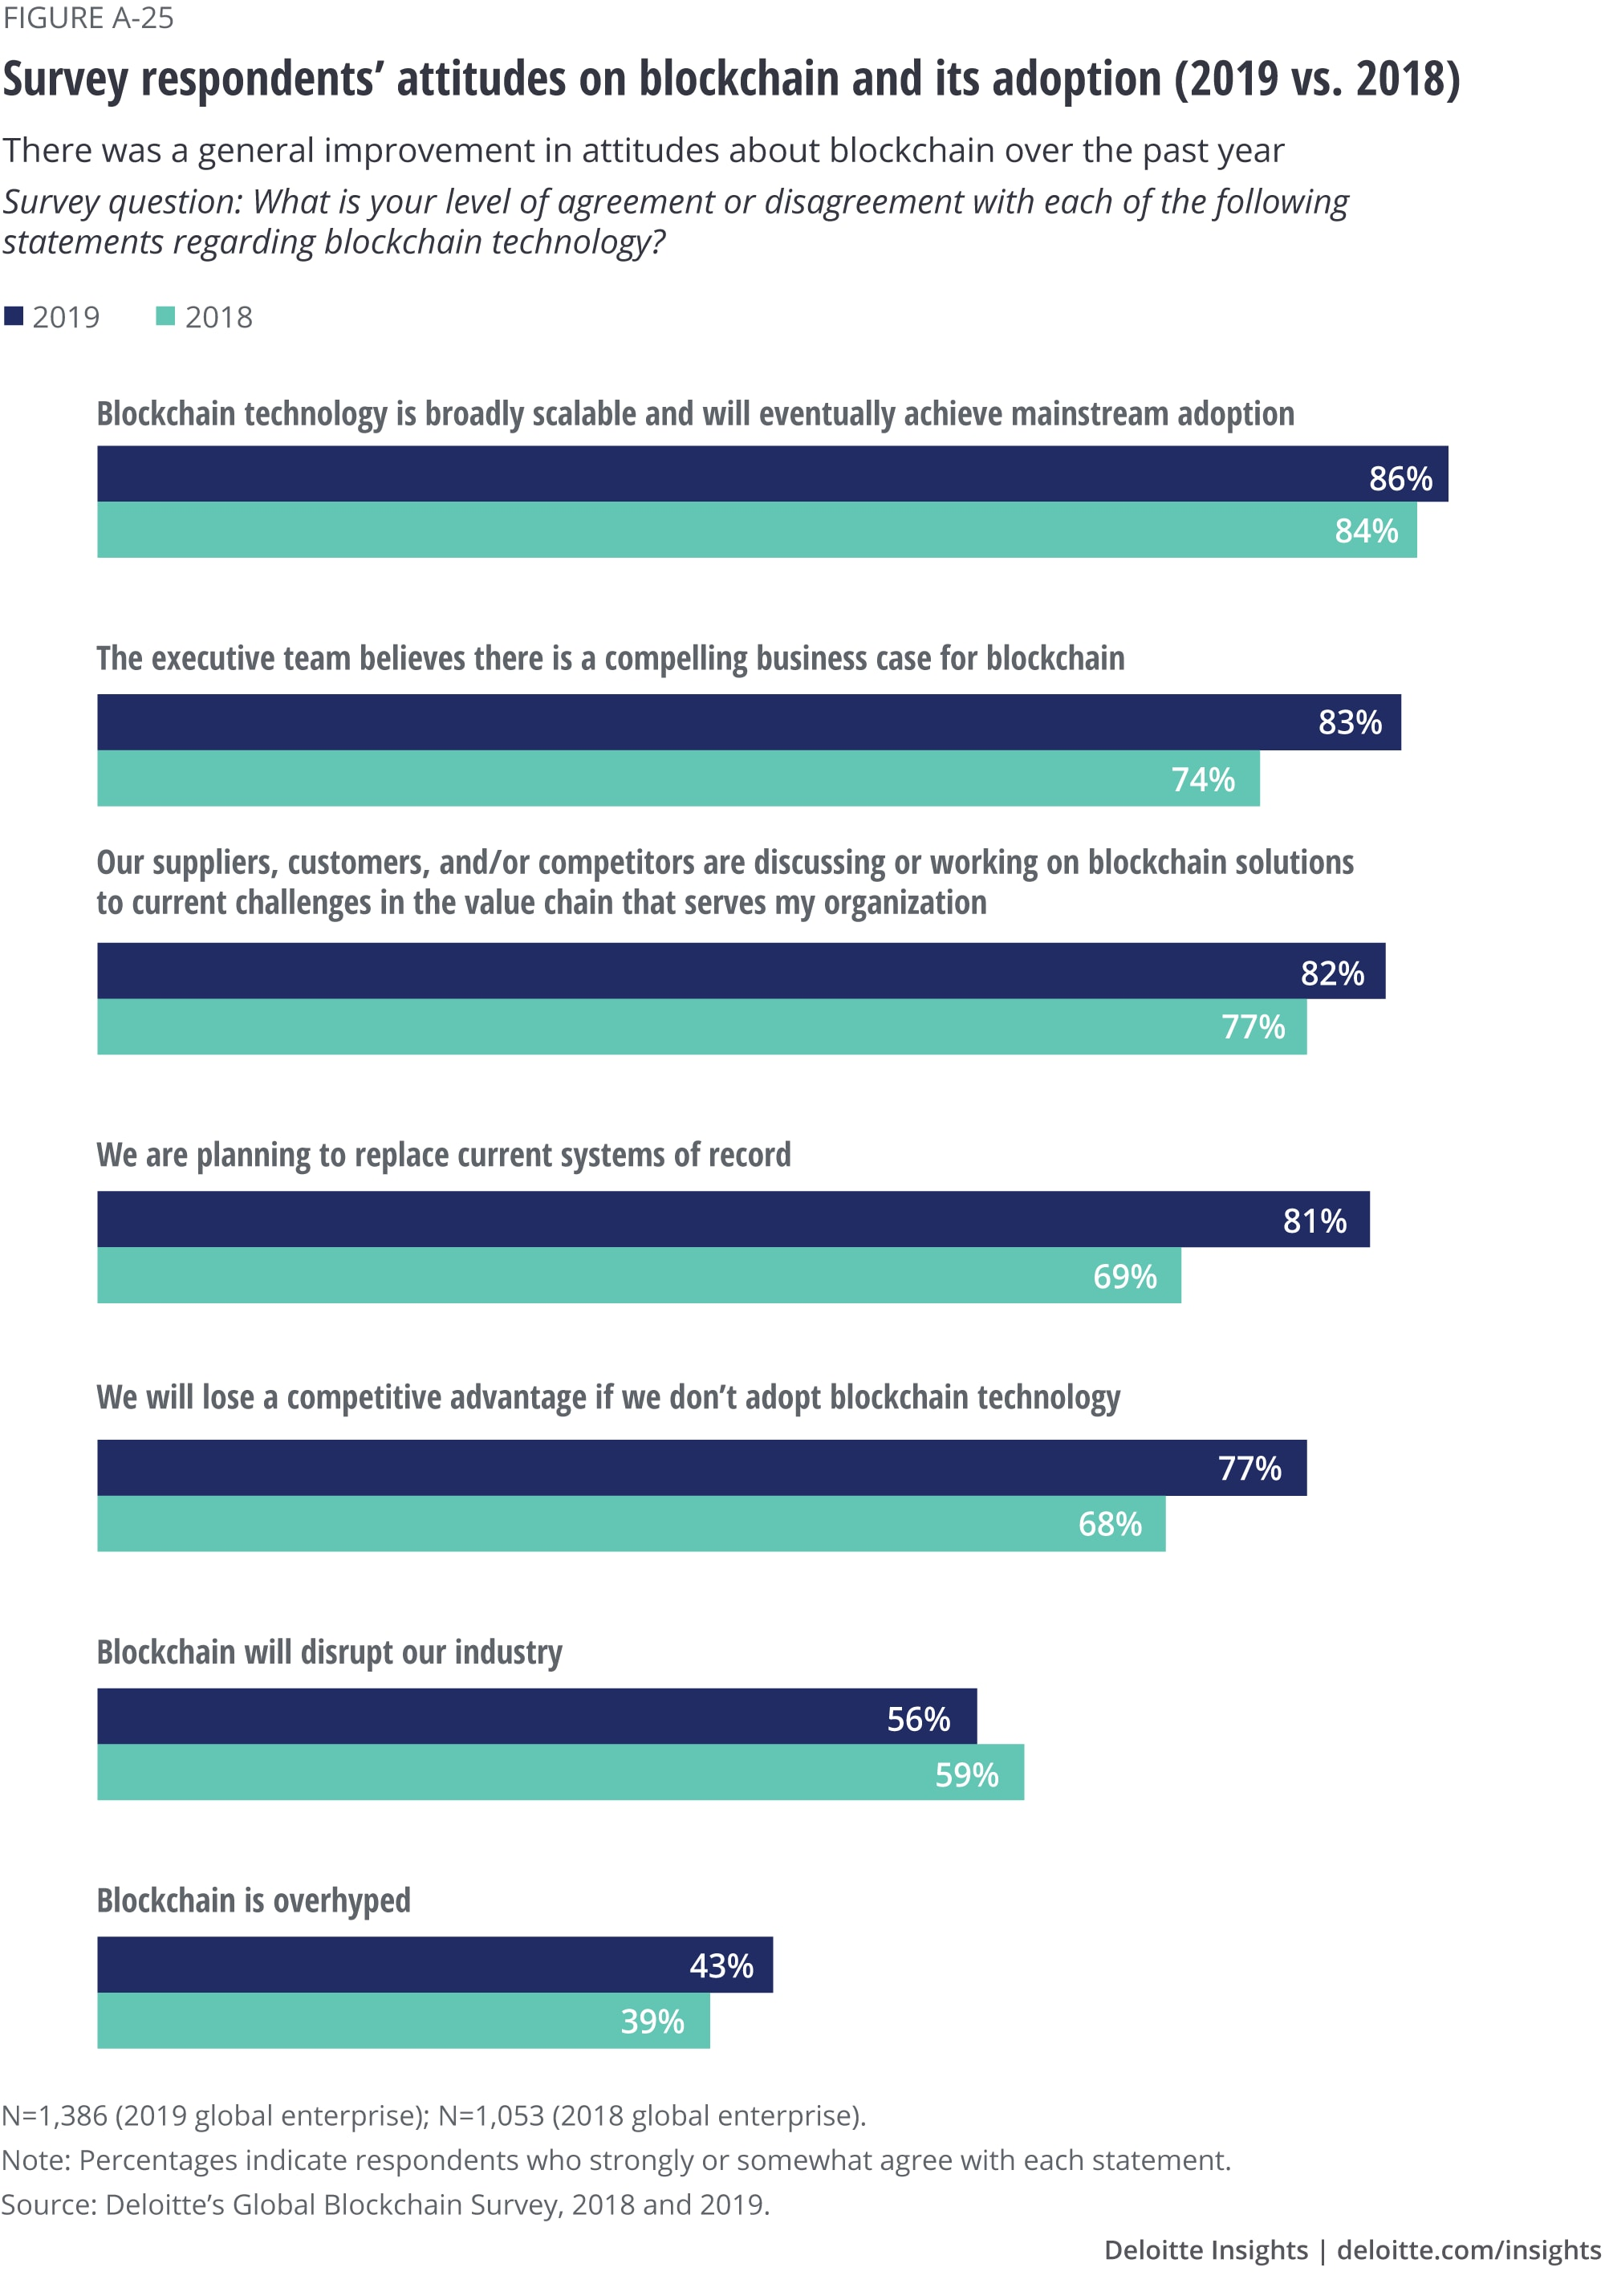 Survey respondents' attitudes on blockchain and its adoption (2019 vs. 2018)